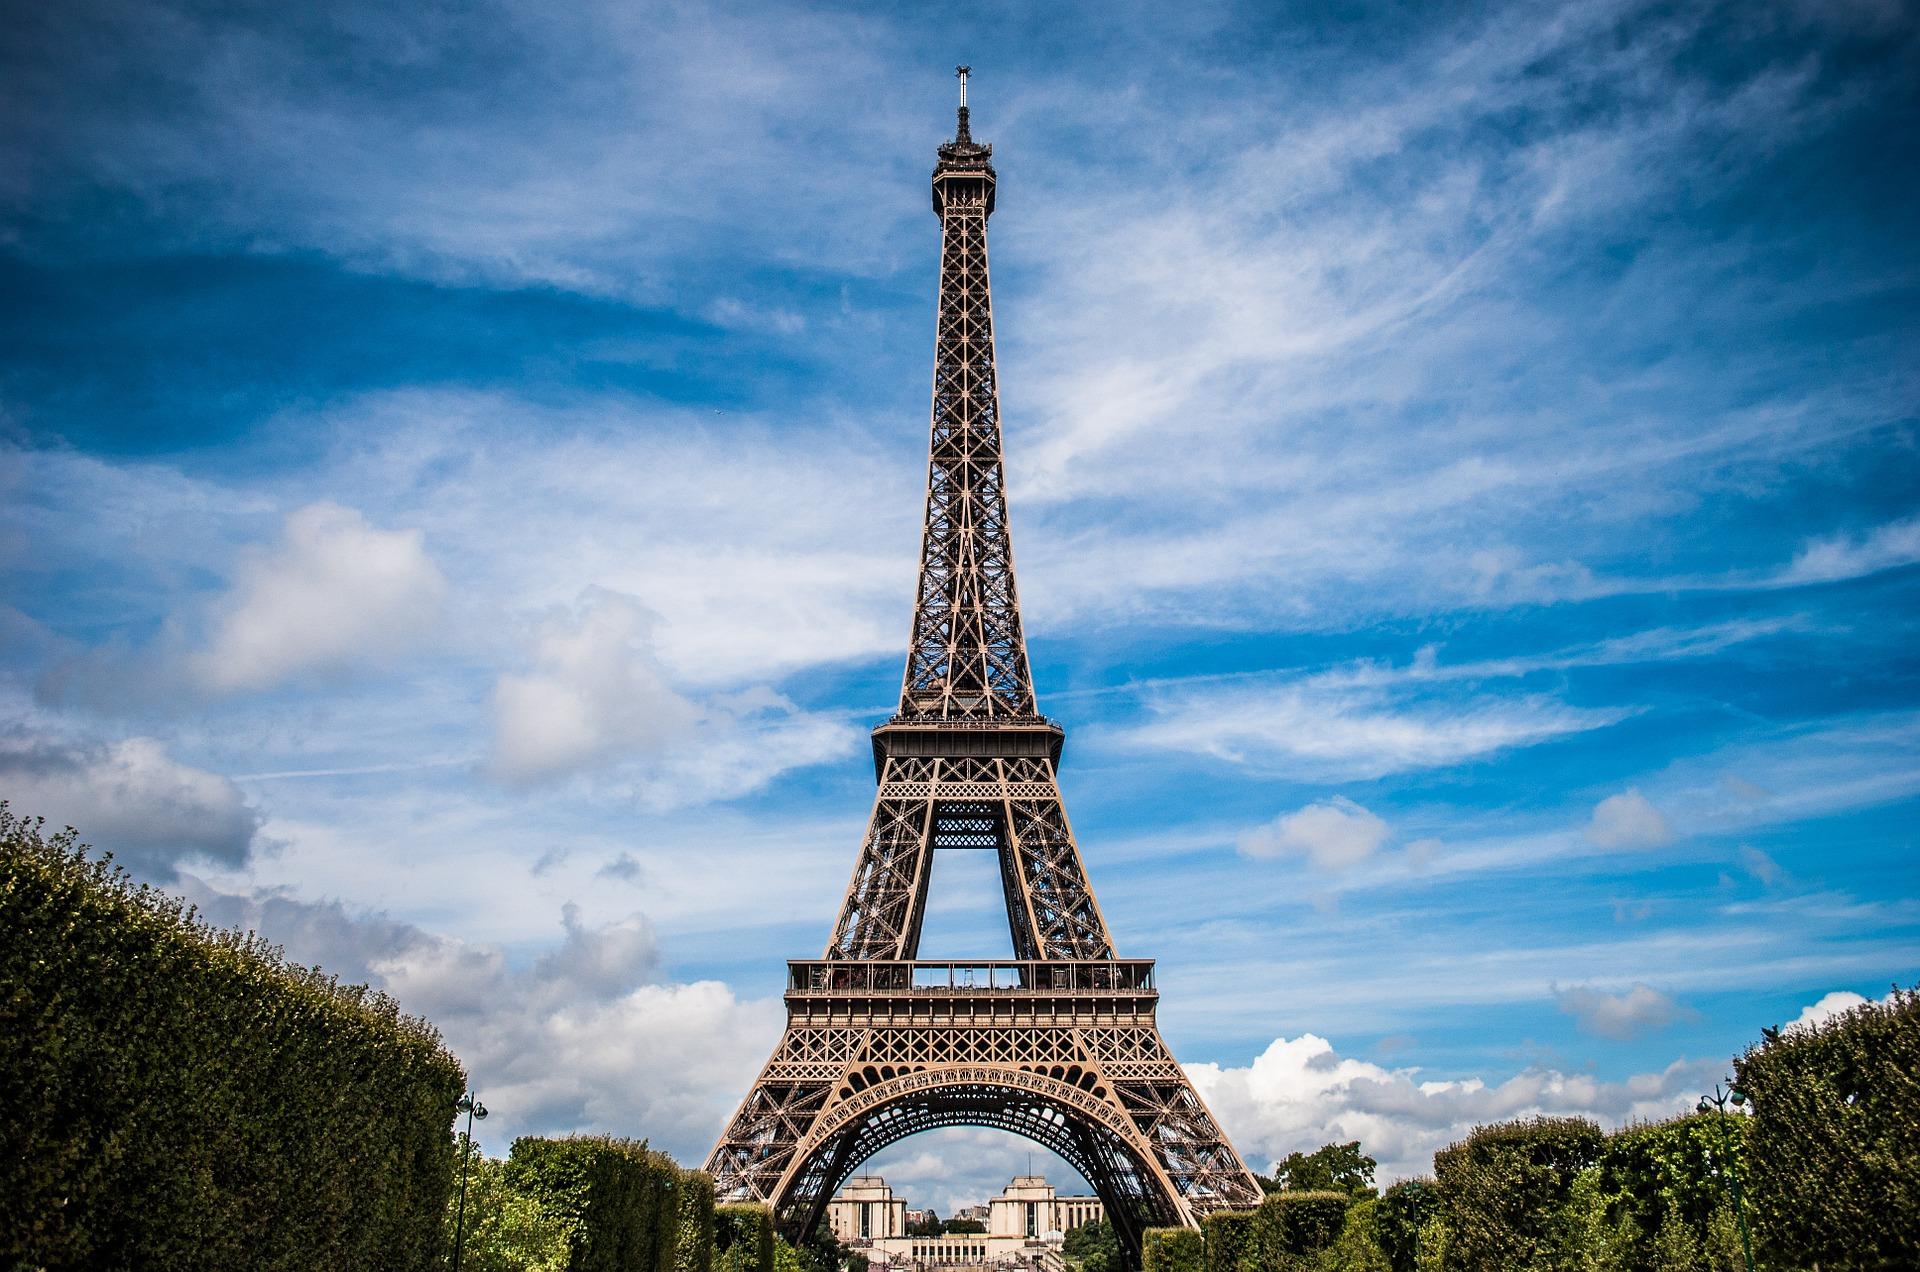 eiffel-tower-975004_1920 (Nuno Lopes from Pixabay)